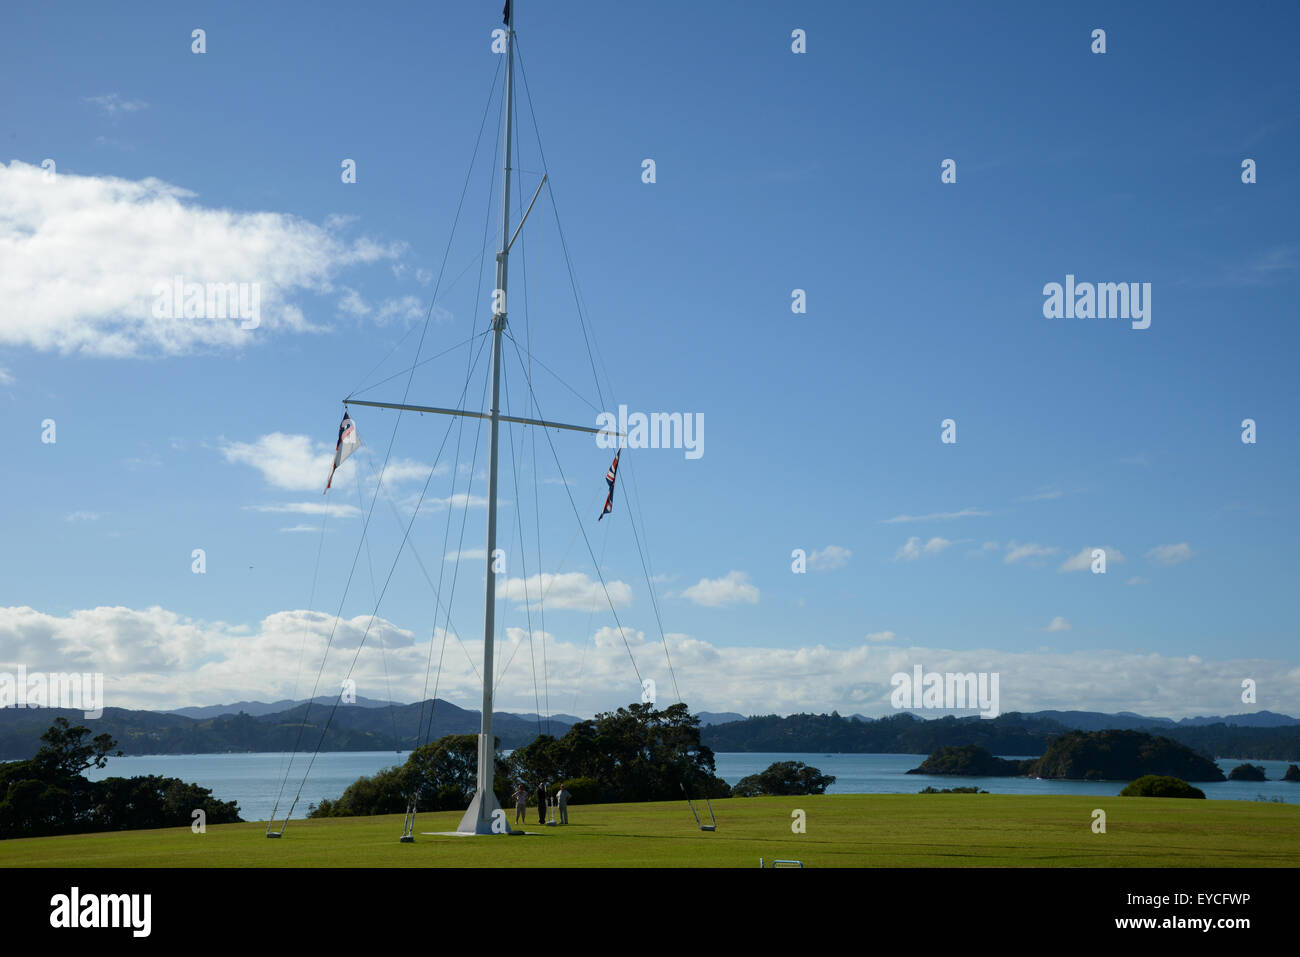 Treaty of Waitangi signed in the Bay of Islands in New Zealand. The flagstaff marks the spot where the Treaty of - Stock Image